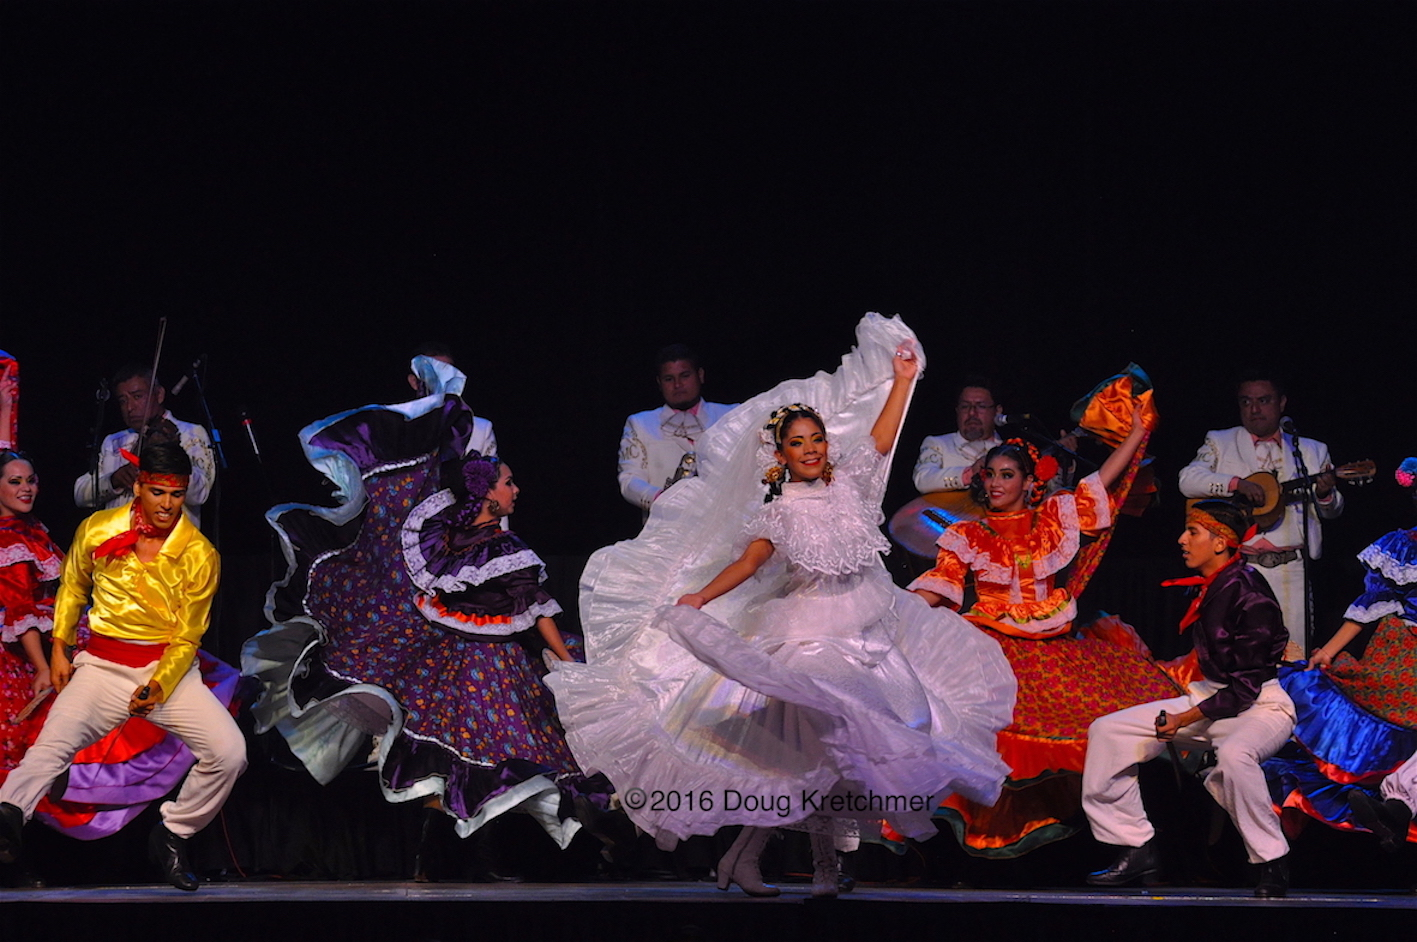 Many colourful performances can be seen at Folklorama pavilions. /DOUG KRETCHMER